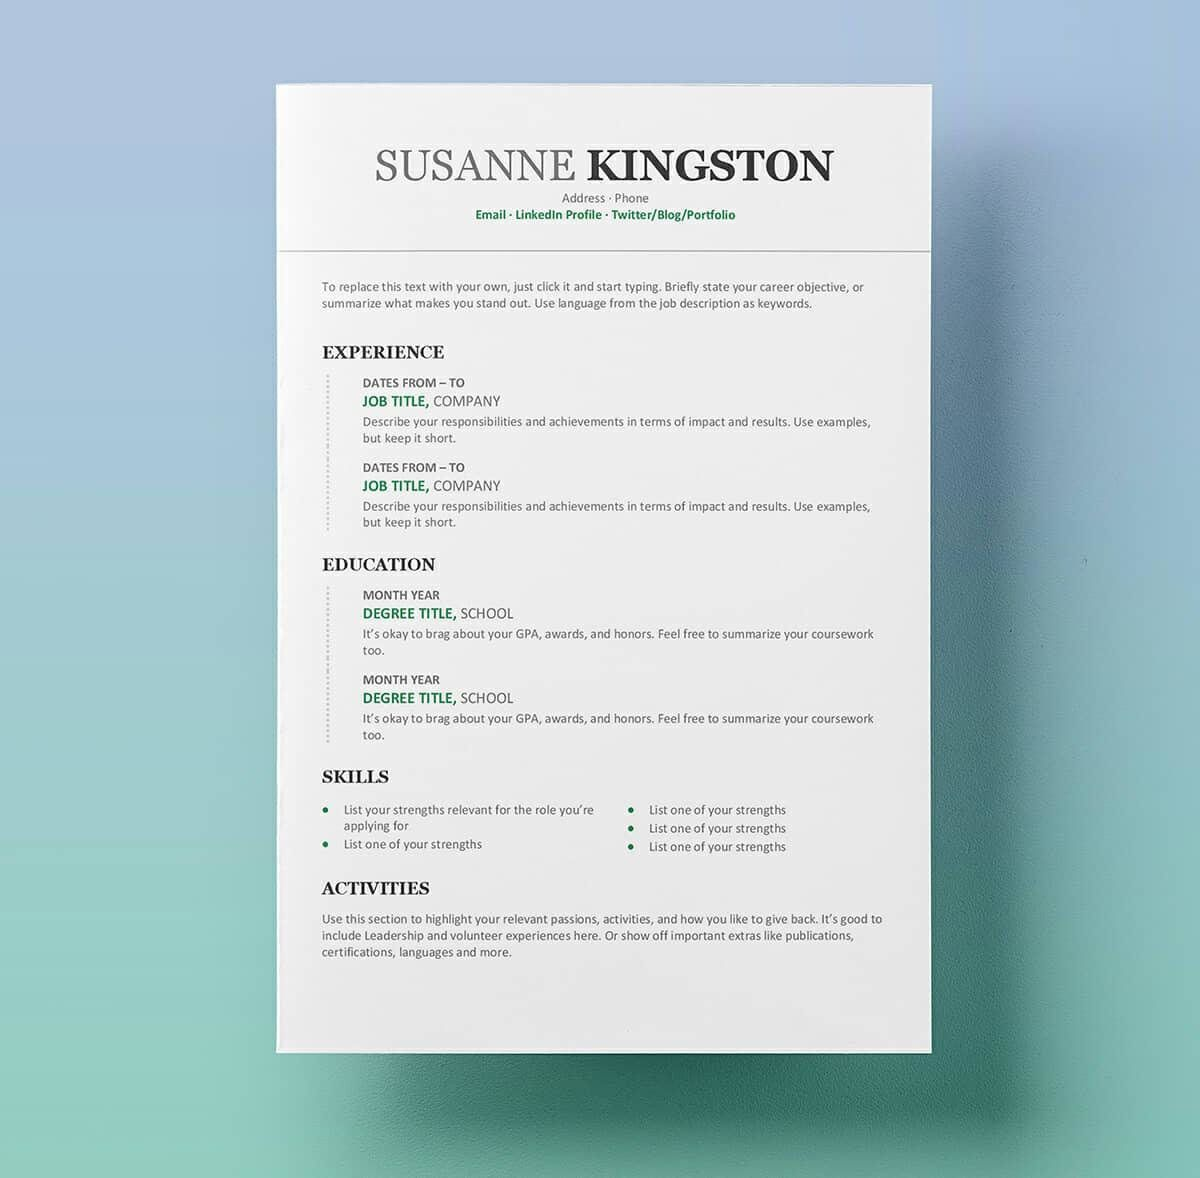 012 Frightening Download Resume Template Free Word Concept  Attractive Microsoft Simple For CreativeFull